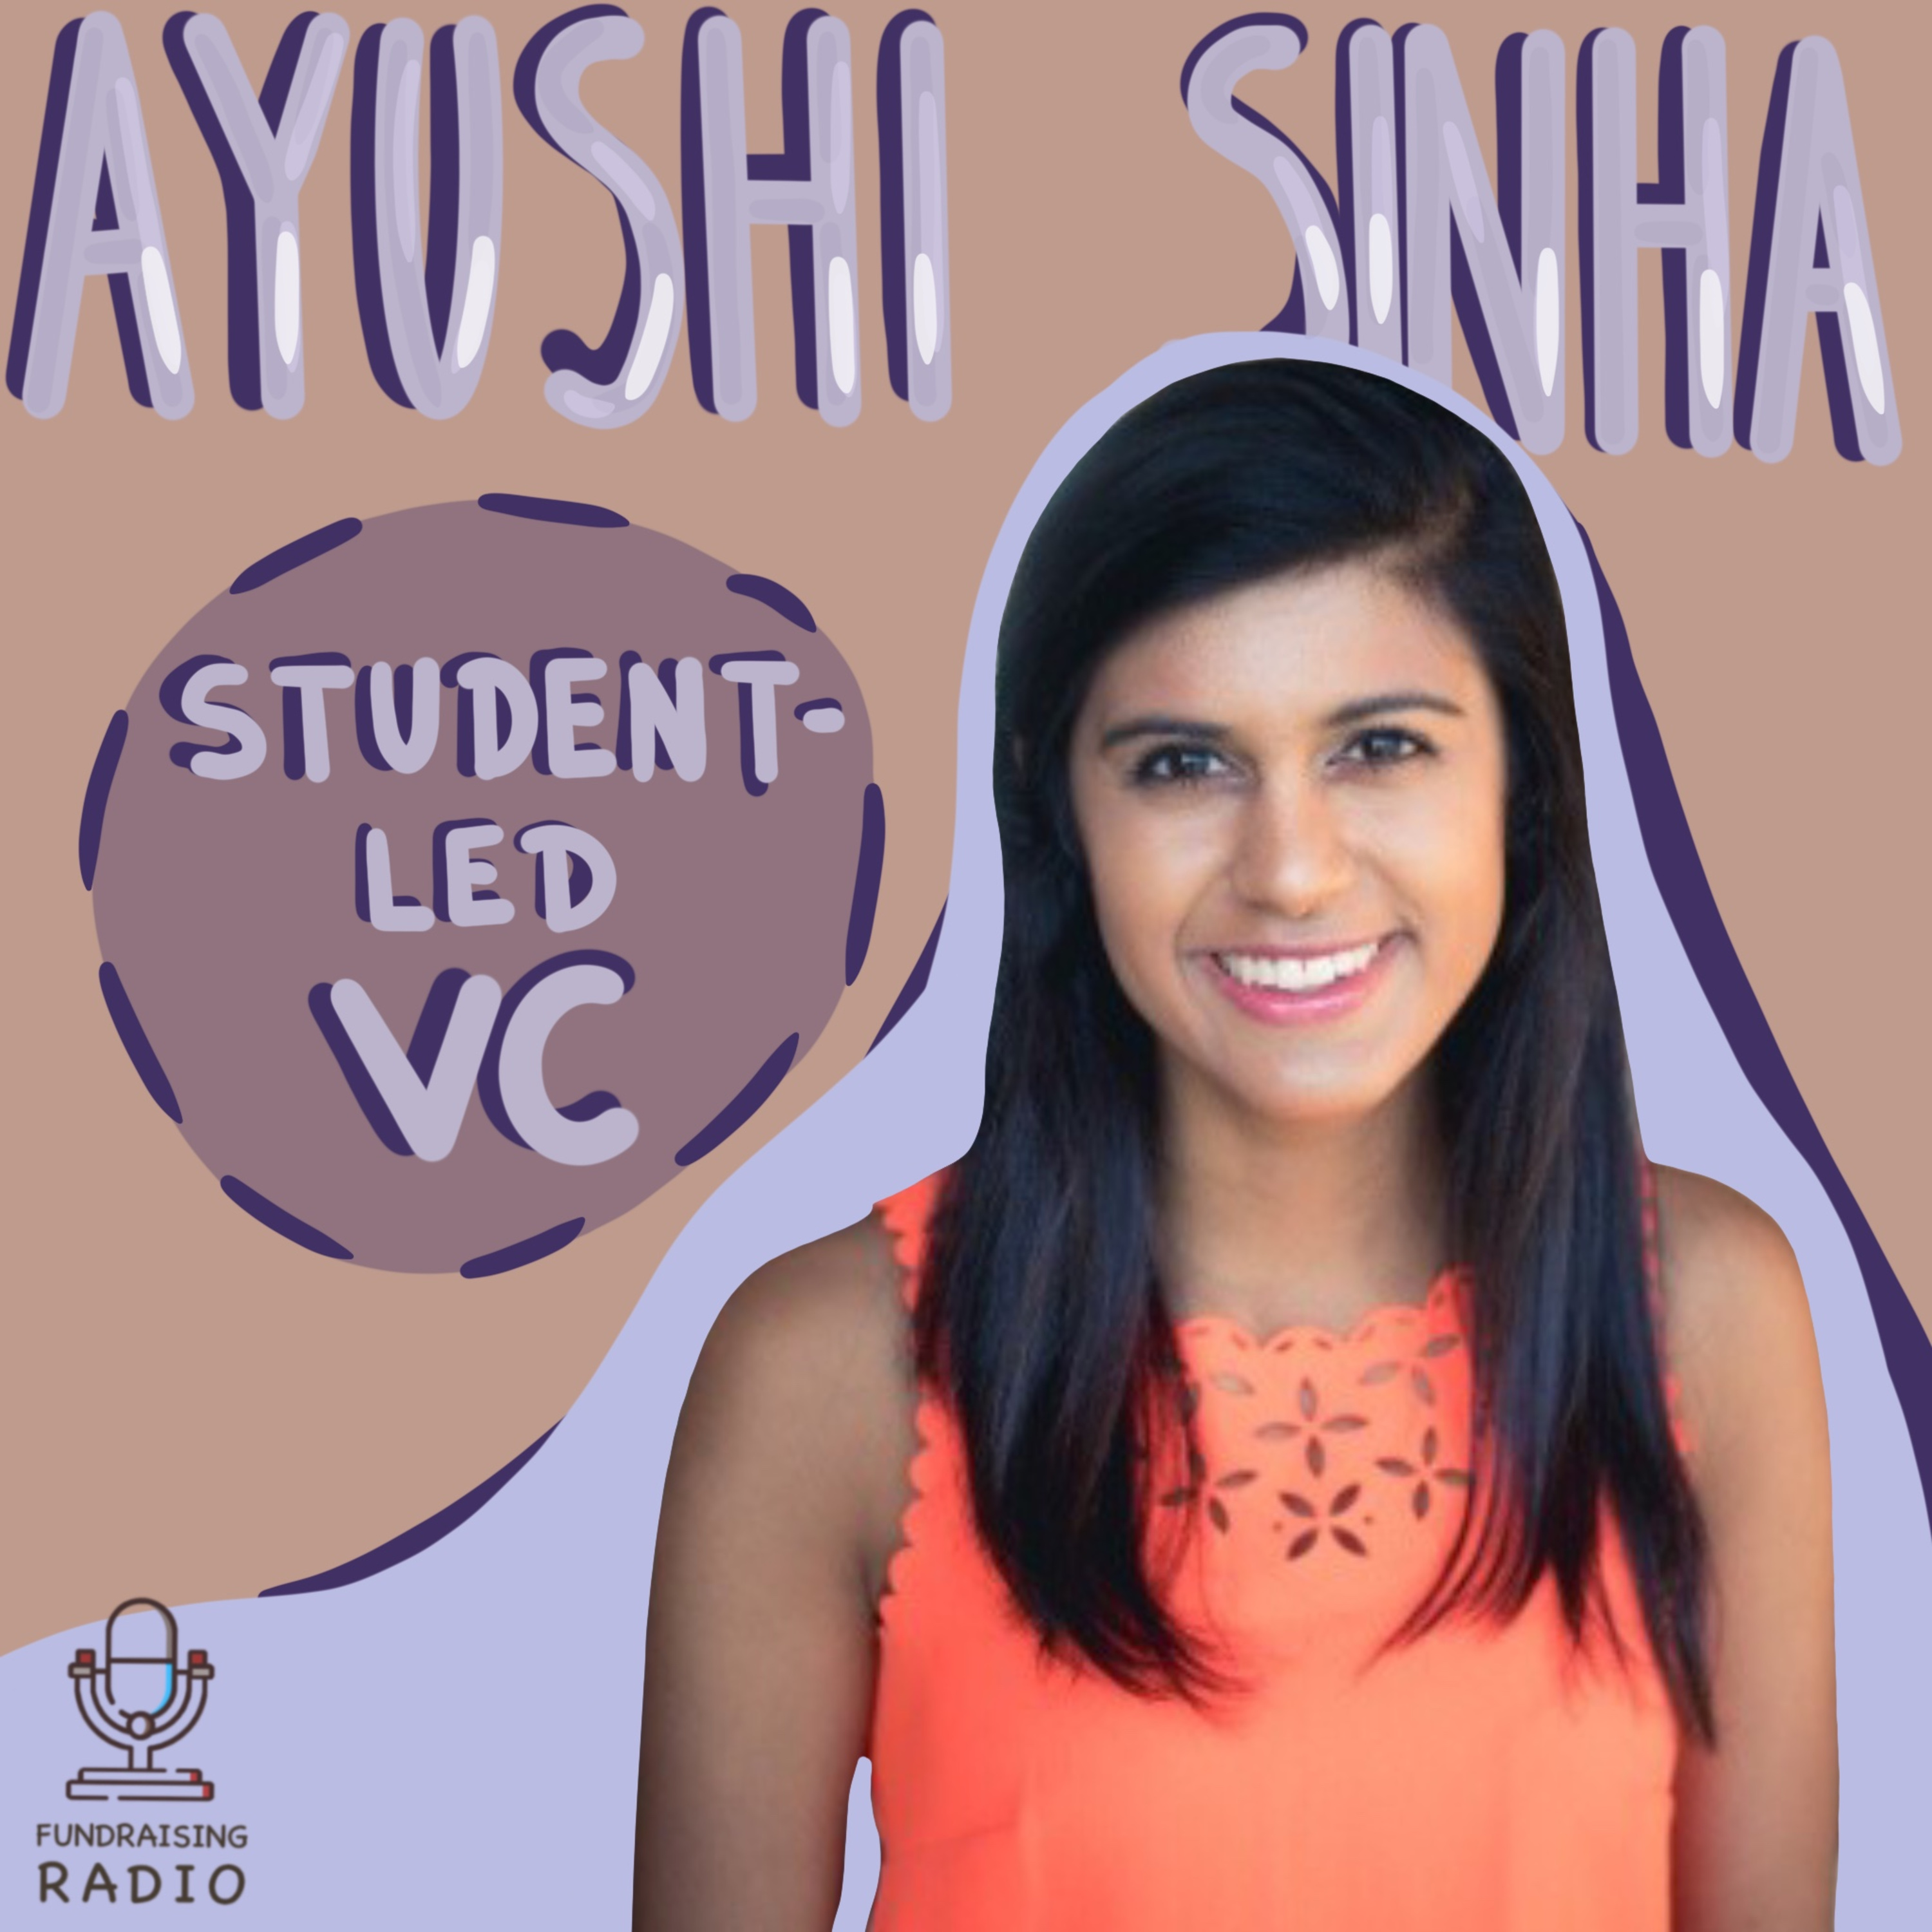 Student-led VCs - how do they work? By Ayushi Sinha, Co-Founder at Prospect Student Ventures.